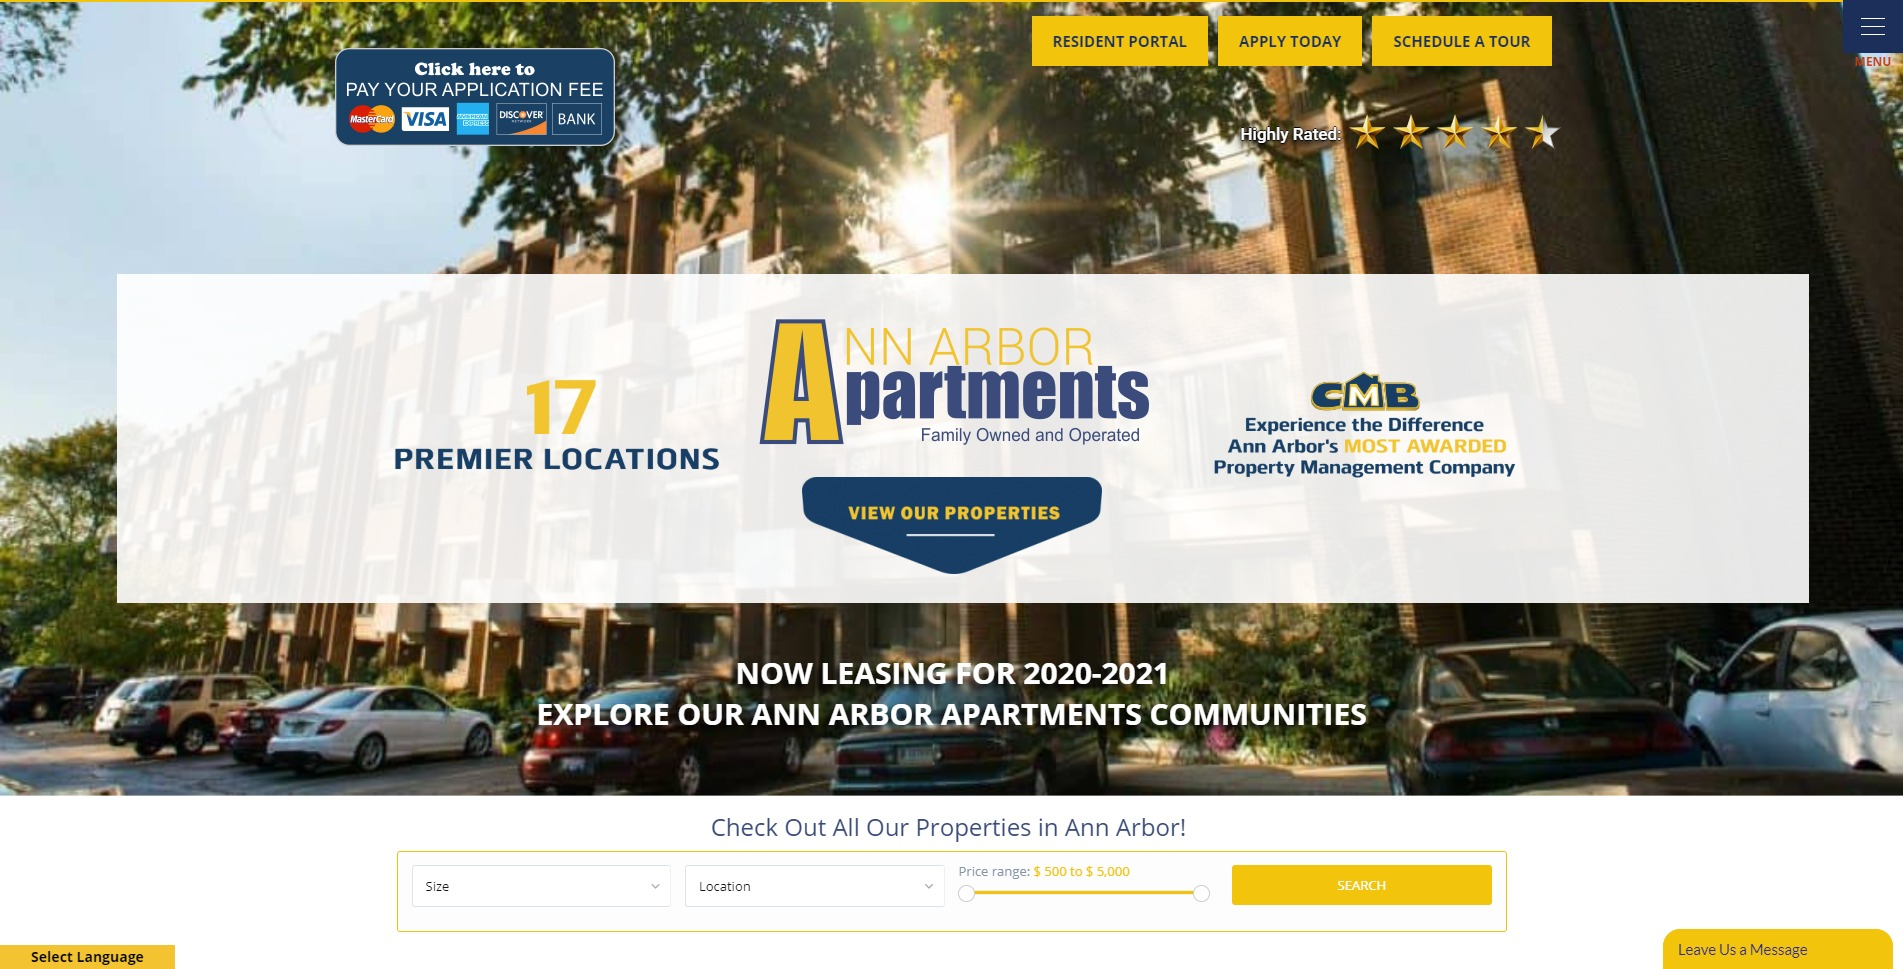 Ann Arbor Apartments receives highly rated Google Reviews